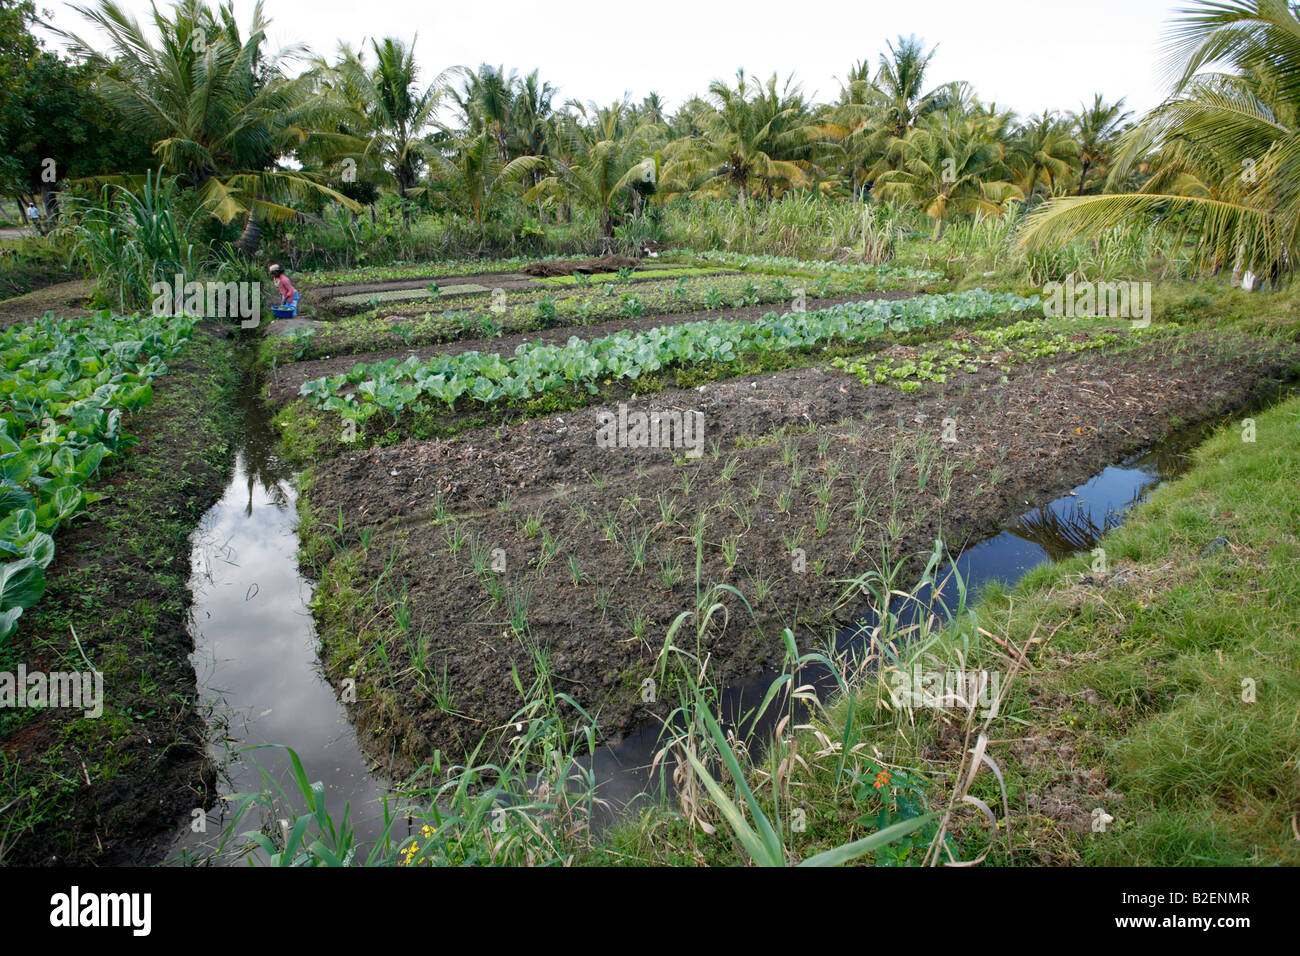 A Tending To Her Vegetable Garden With Furrow Irrigation